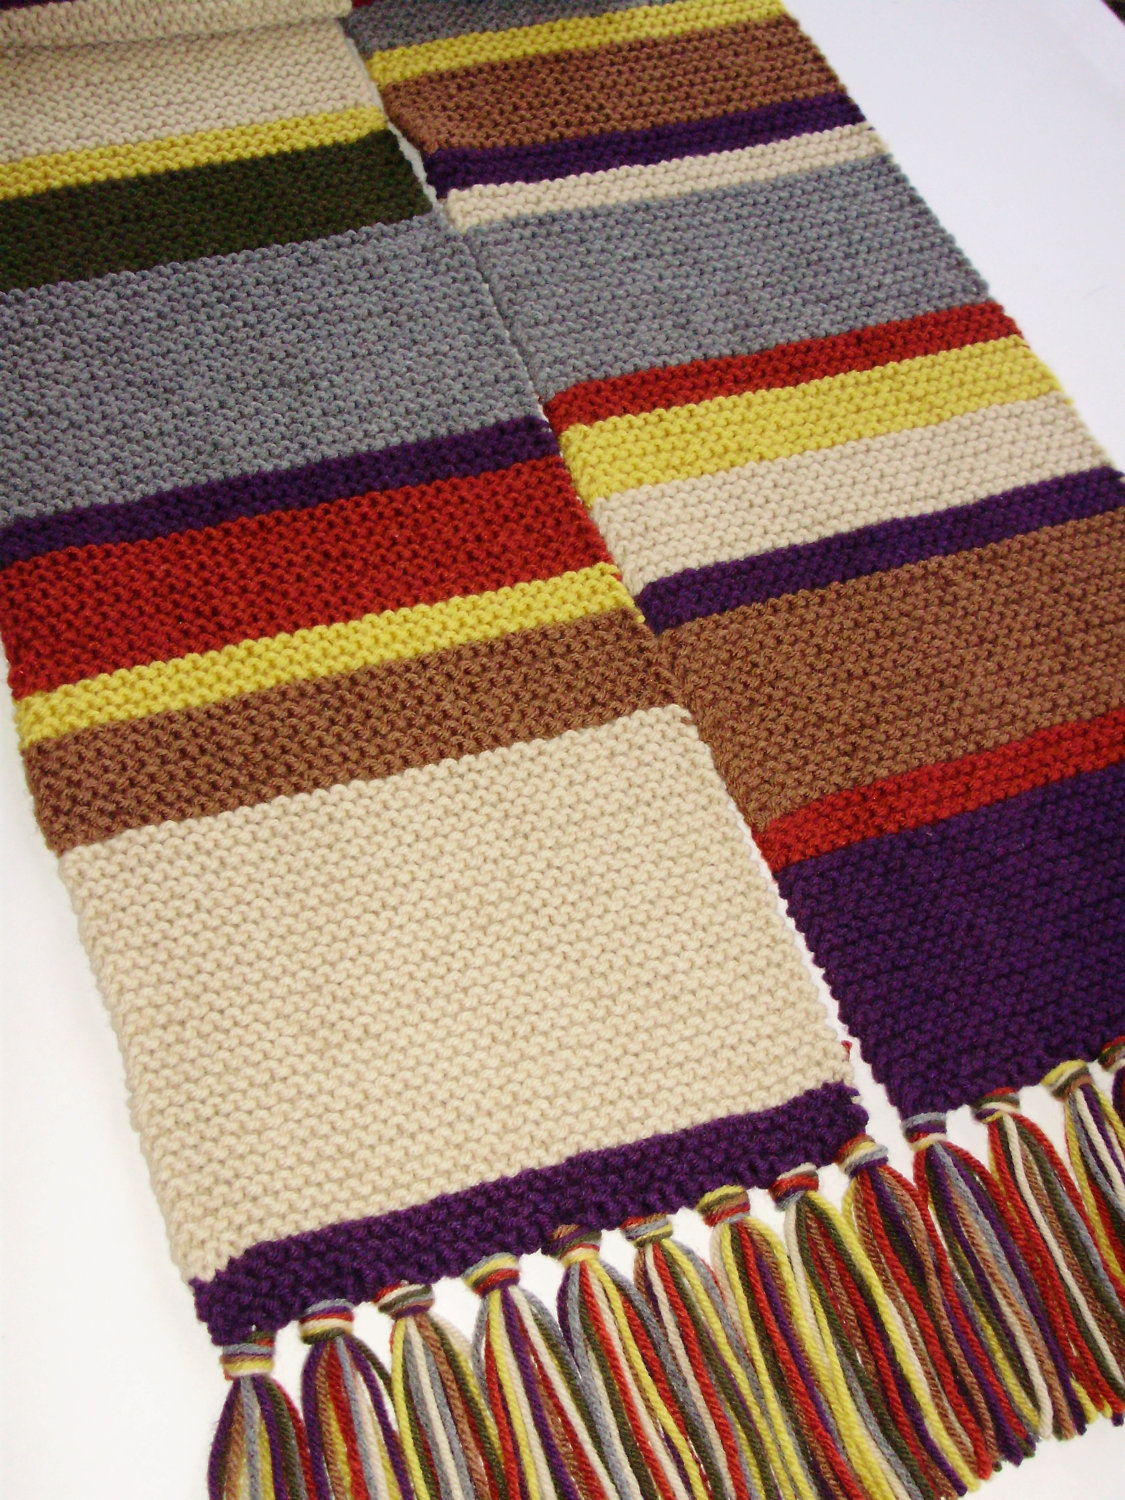 4 Doctor Who Scarf Knitting Pattern - The Funky Stitch